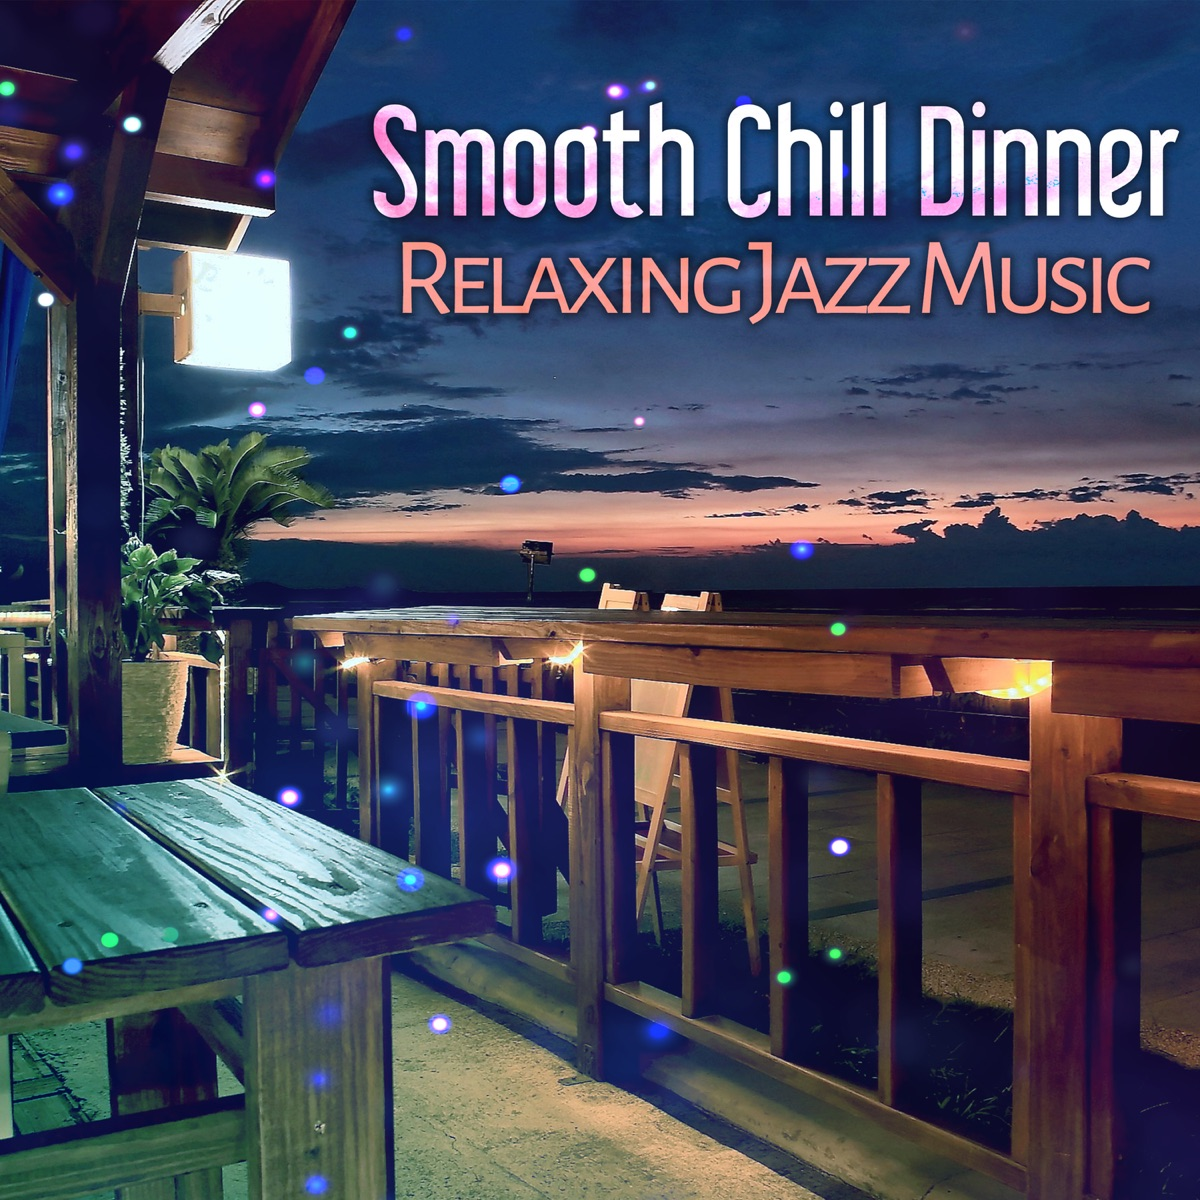 Smooth Chill Dinner: Relaxing Jazz Music, Soft Piano, Guitar Dinner